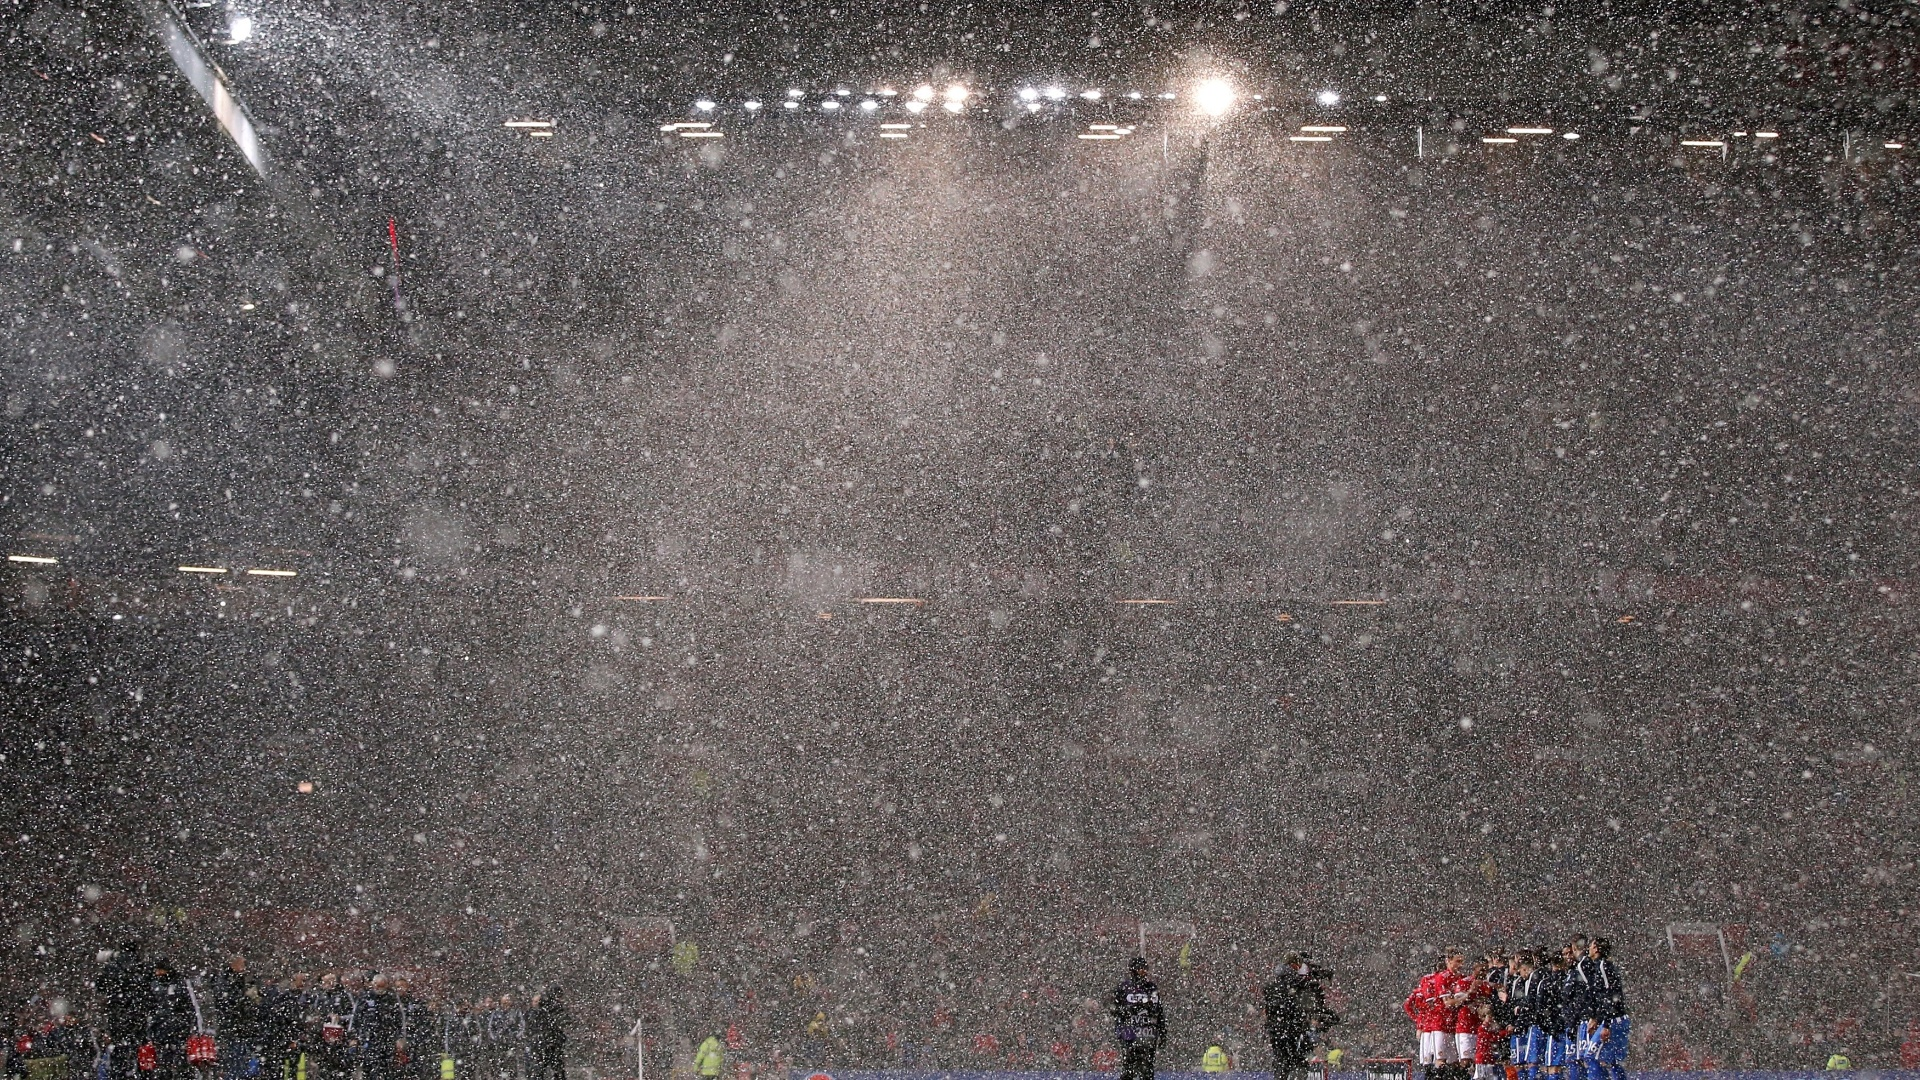 Neve no jogo Manchester United x Brighton, no Old Trafford